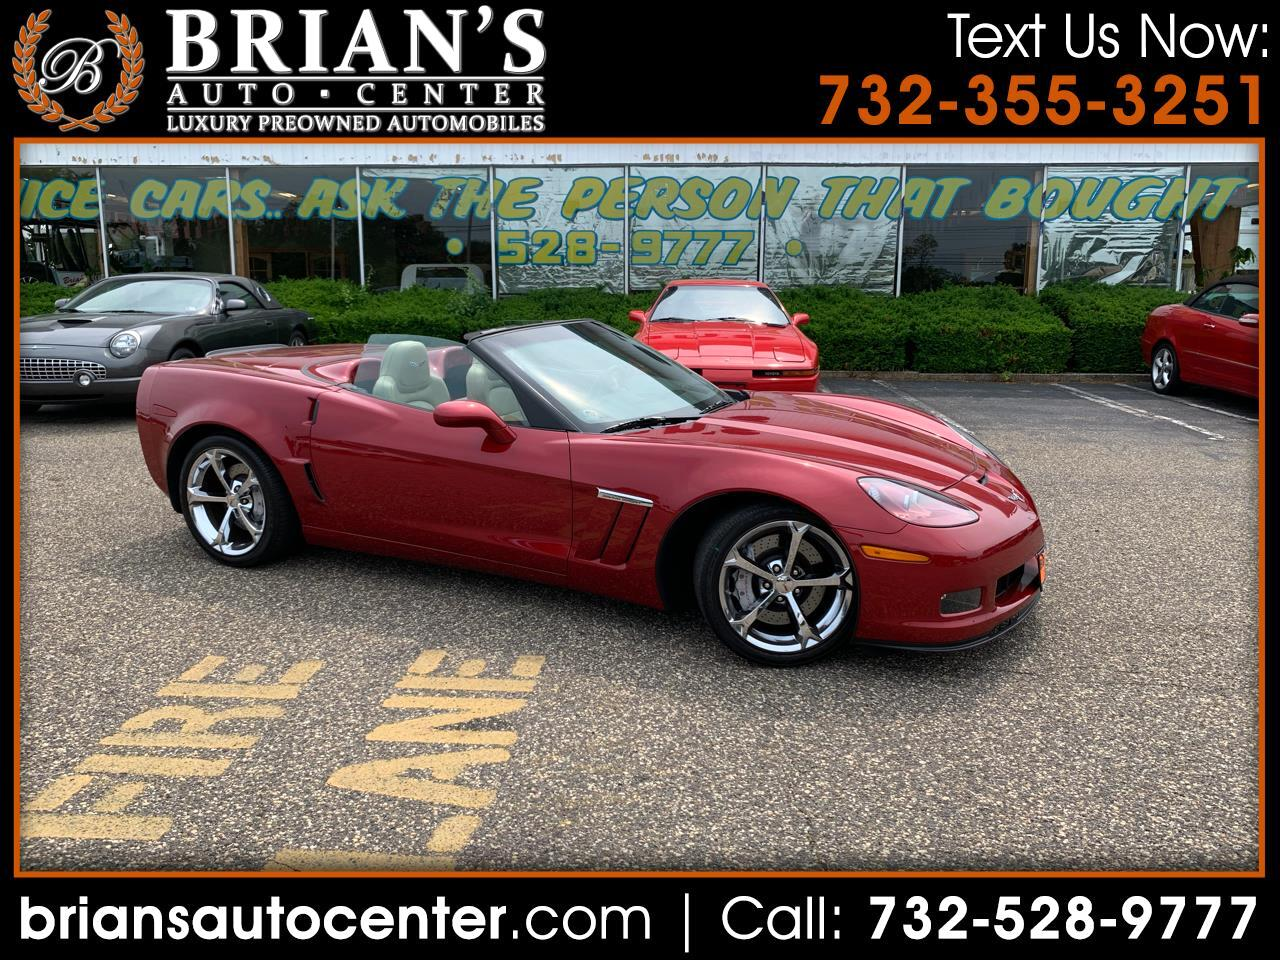 2012 Chevrolet Corvette GS Convertible 3LT